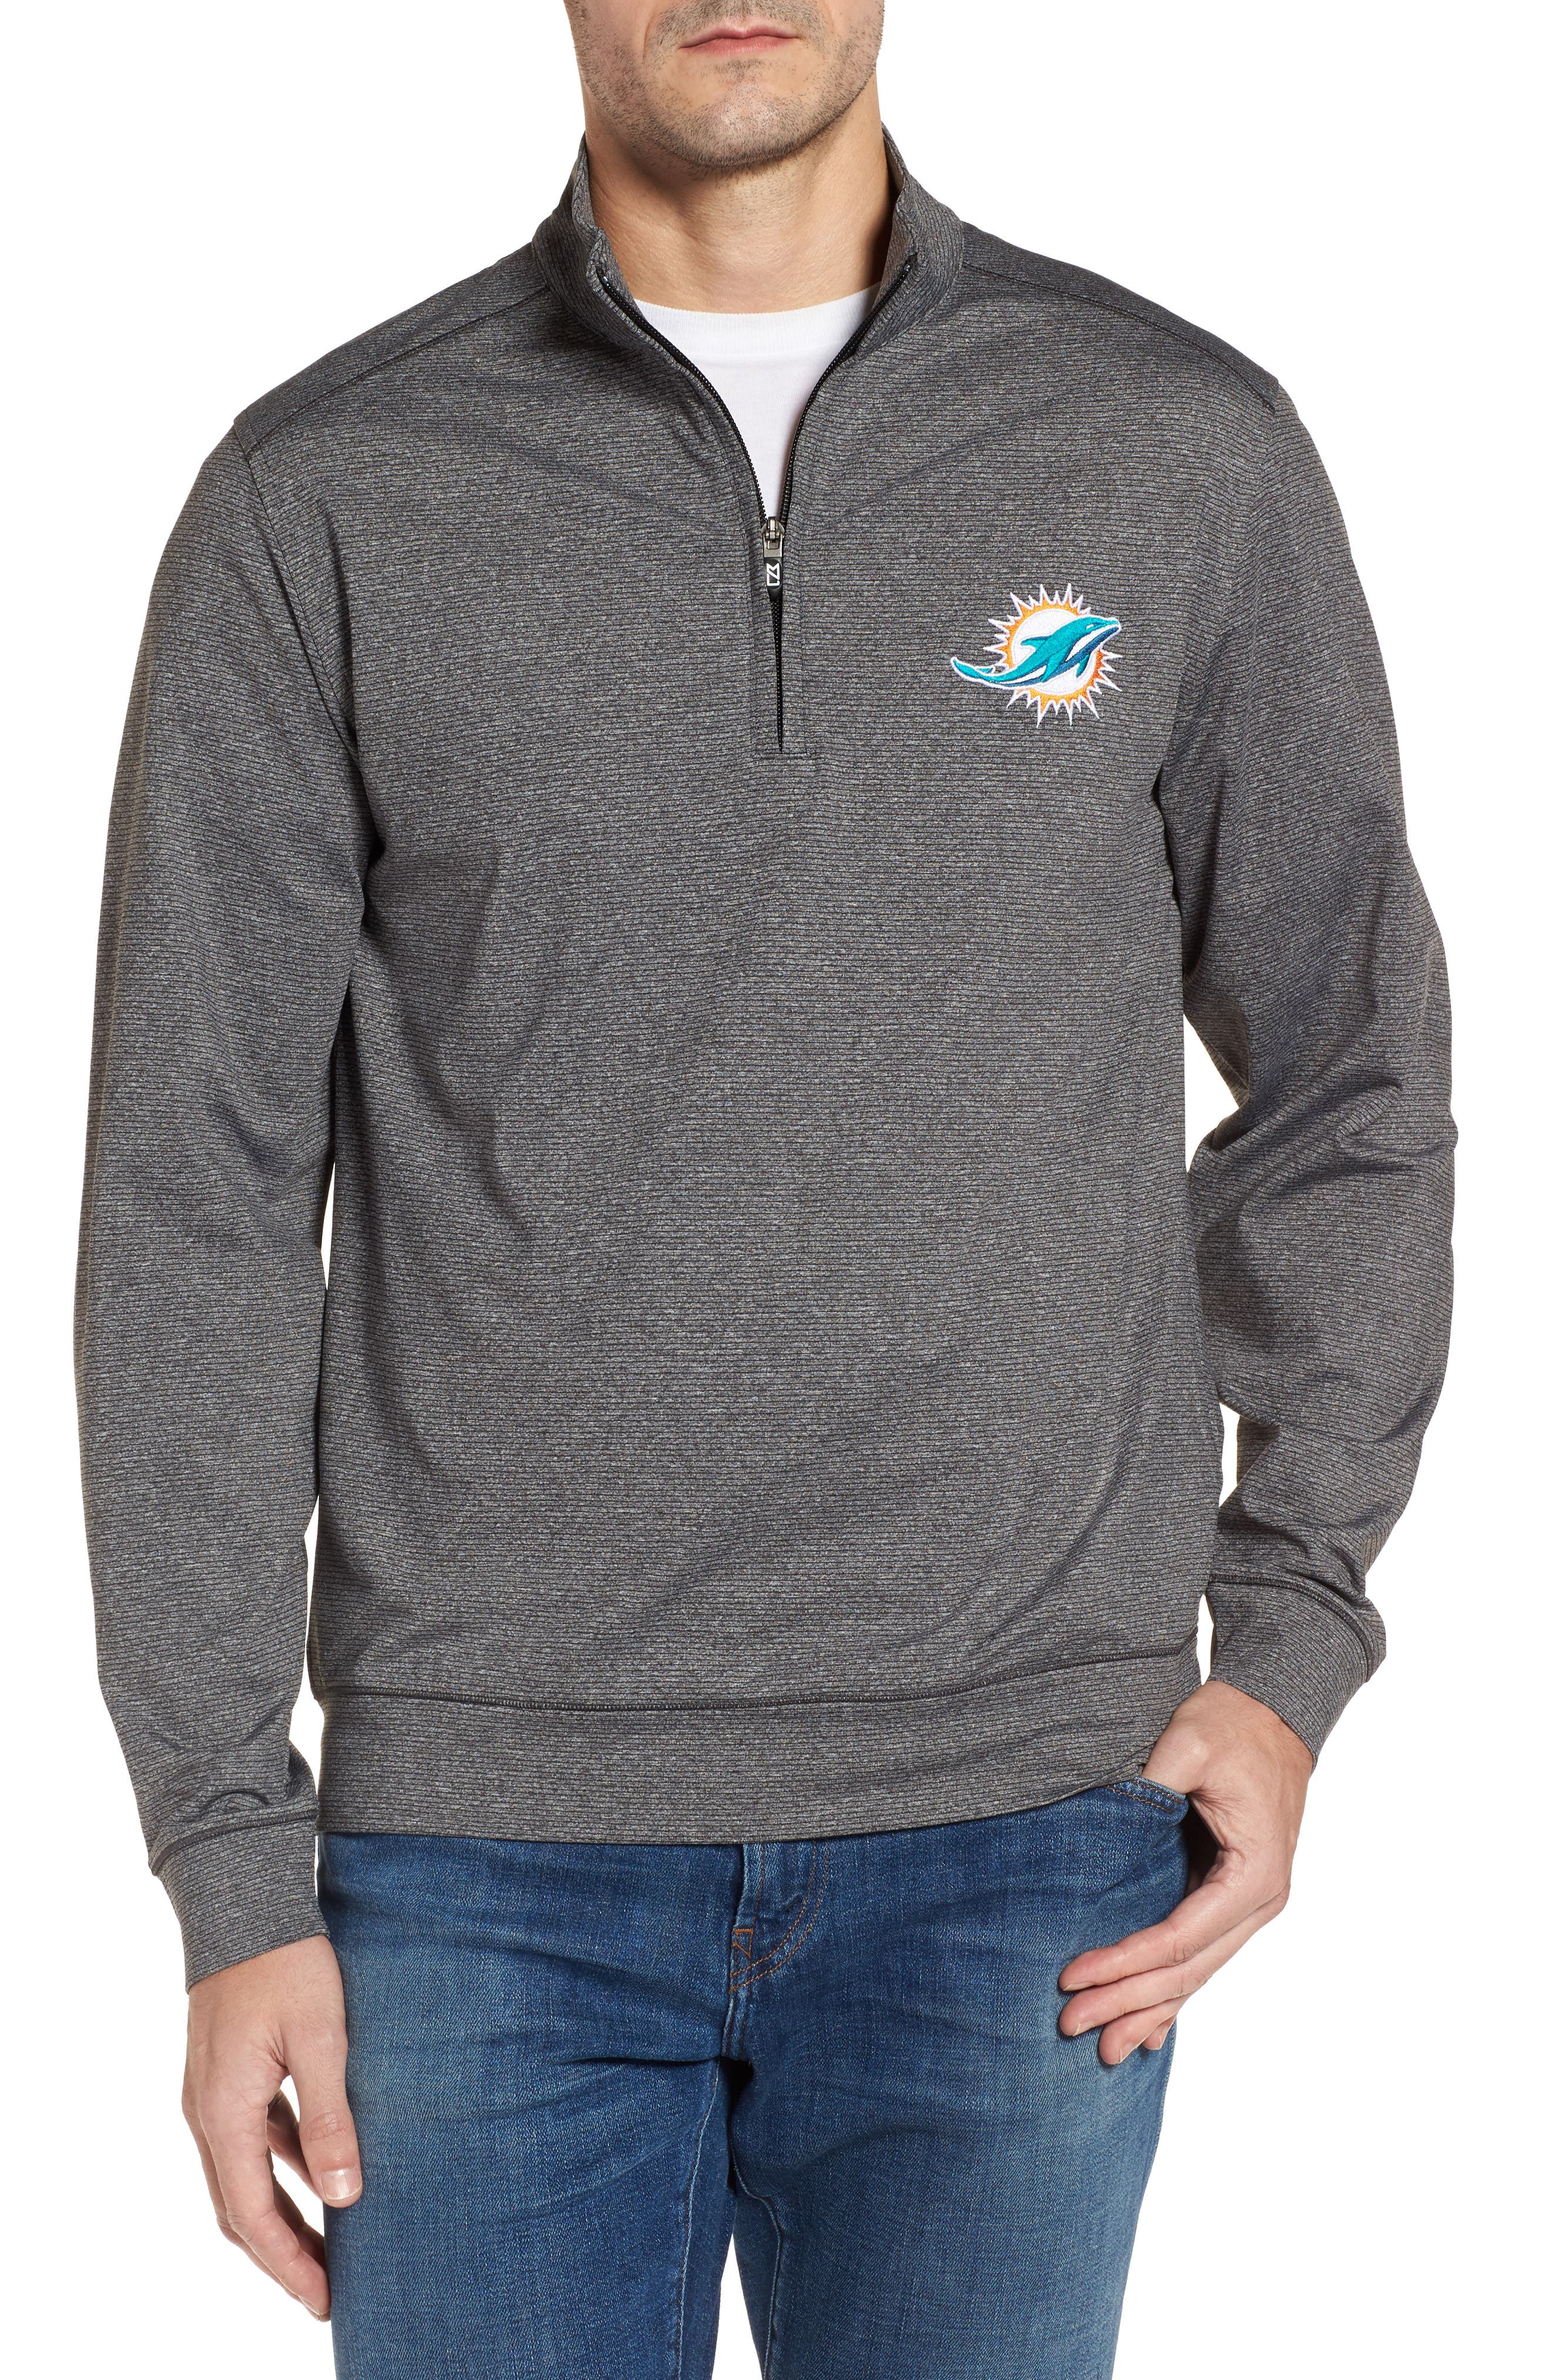 Cutter & Butter Shoreline - Miami Dolphins Half Zip Pullover,                             Main thumbnail 1, color,                             Charcoal Heather